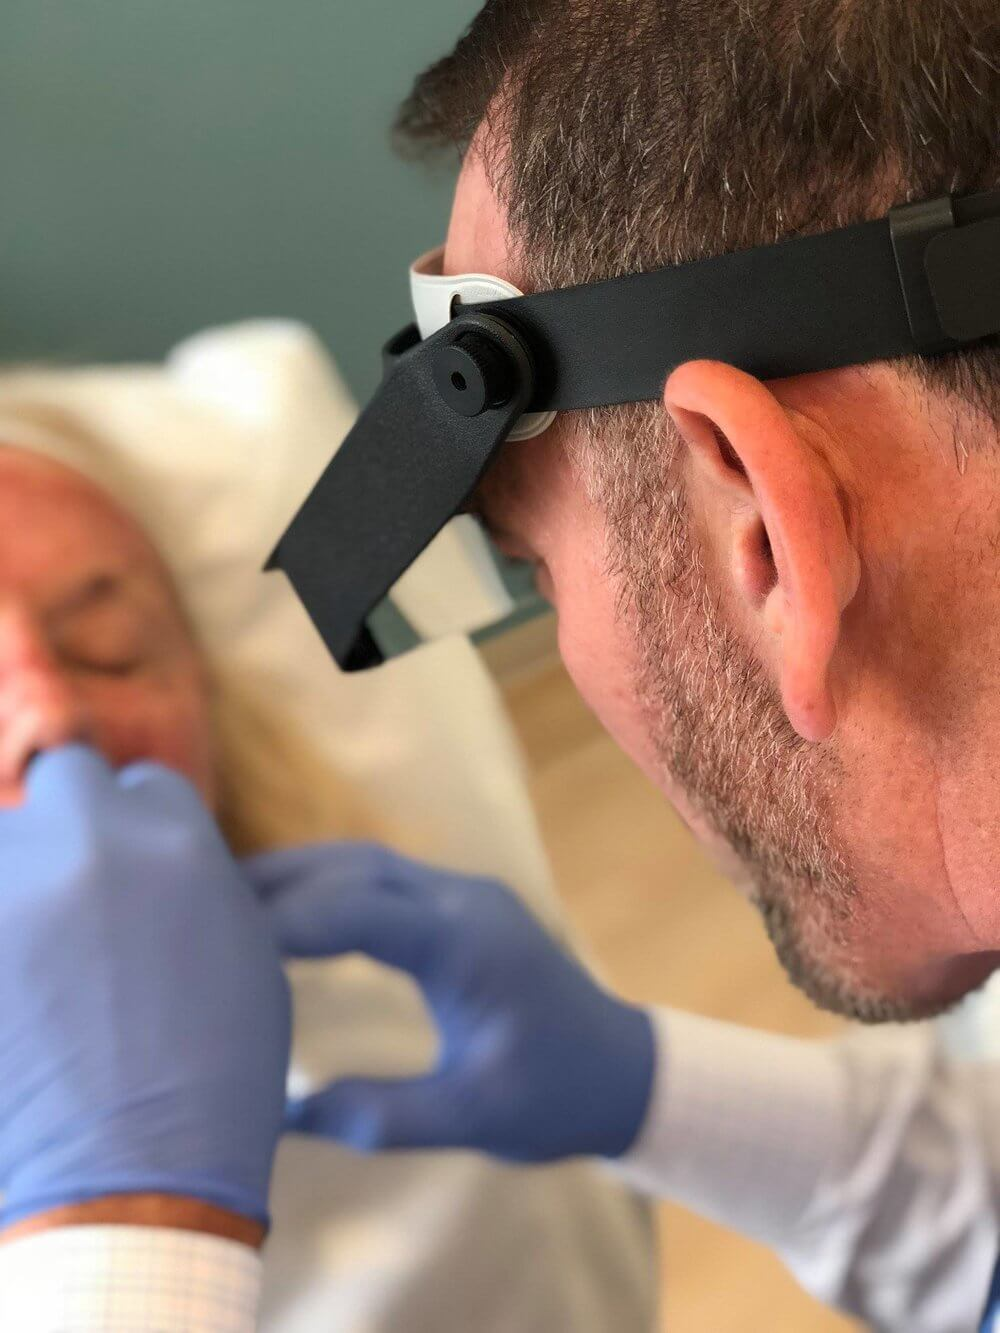 Dr. Petteruti using Restylane to fill the beautiful woman's lips.